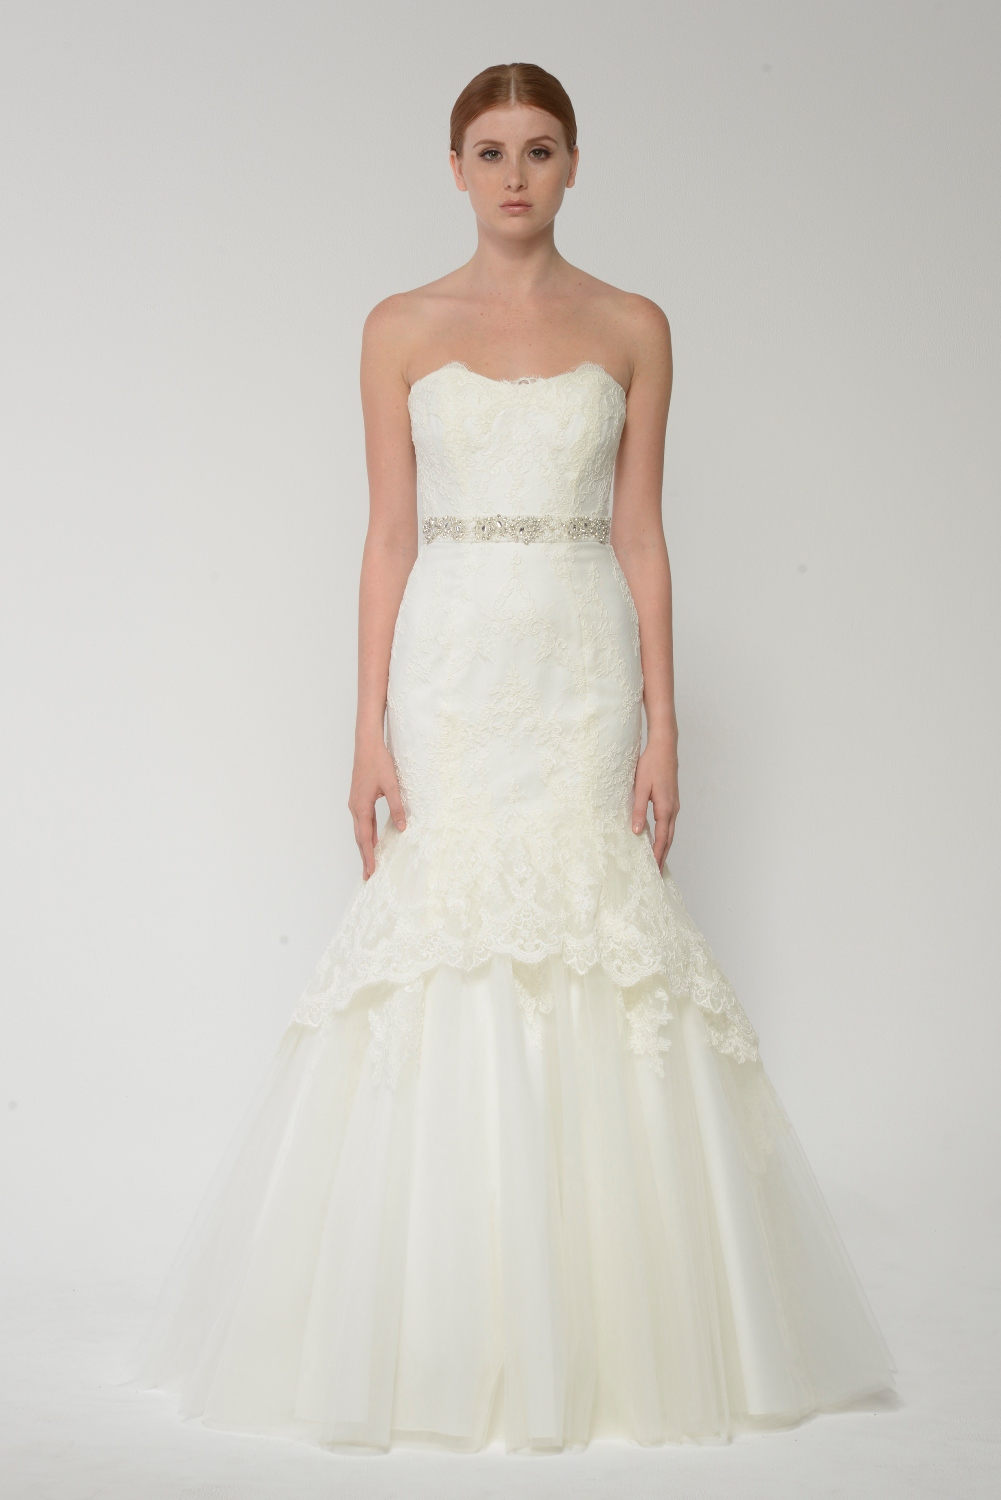 Monique Lhuillier Bliss Bridal Collection - BL 1415